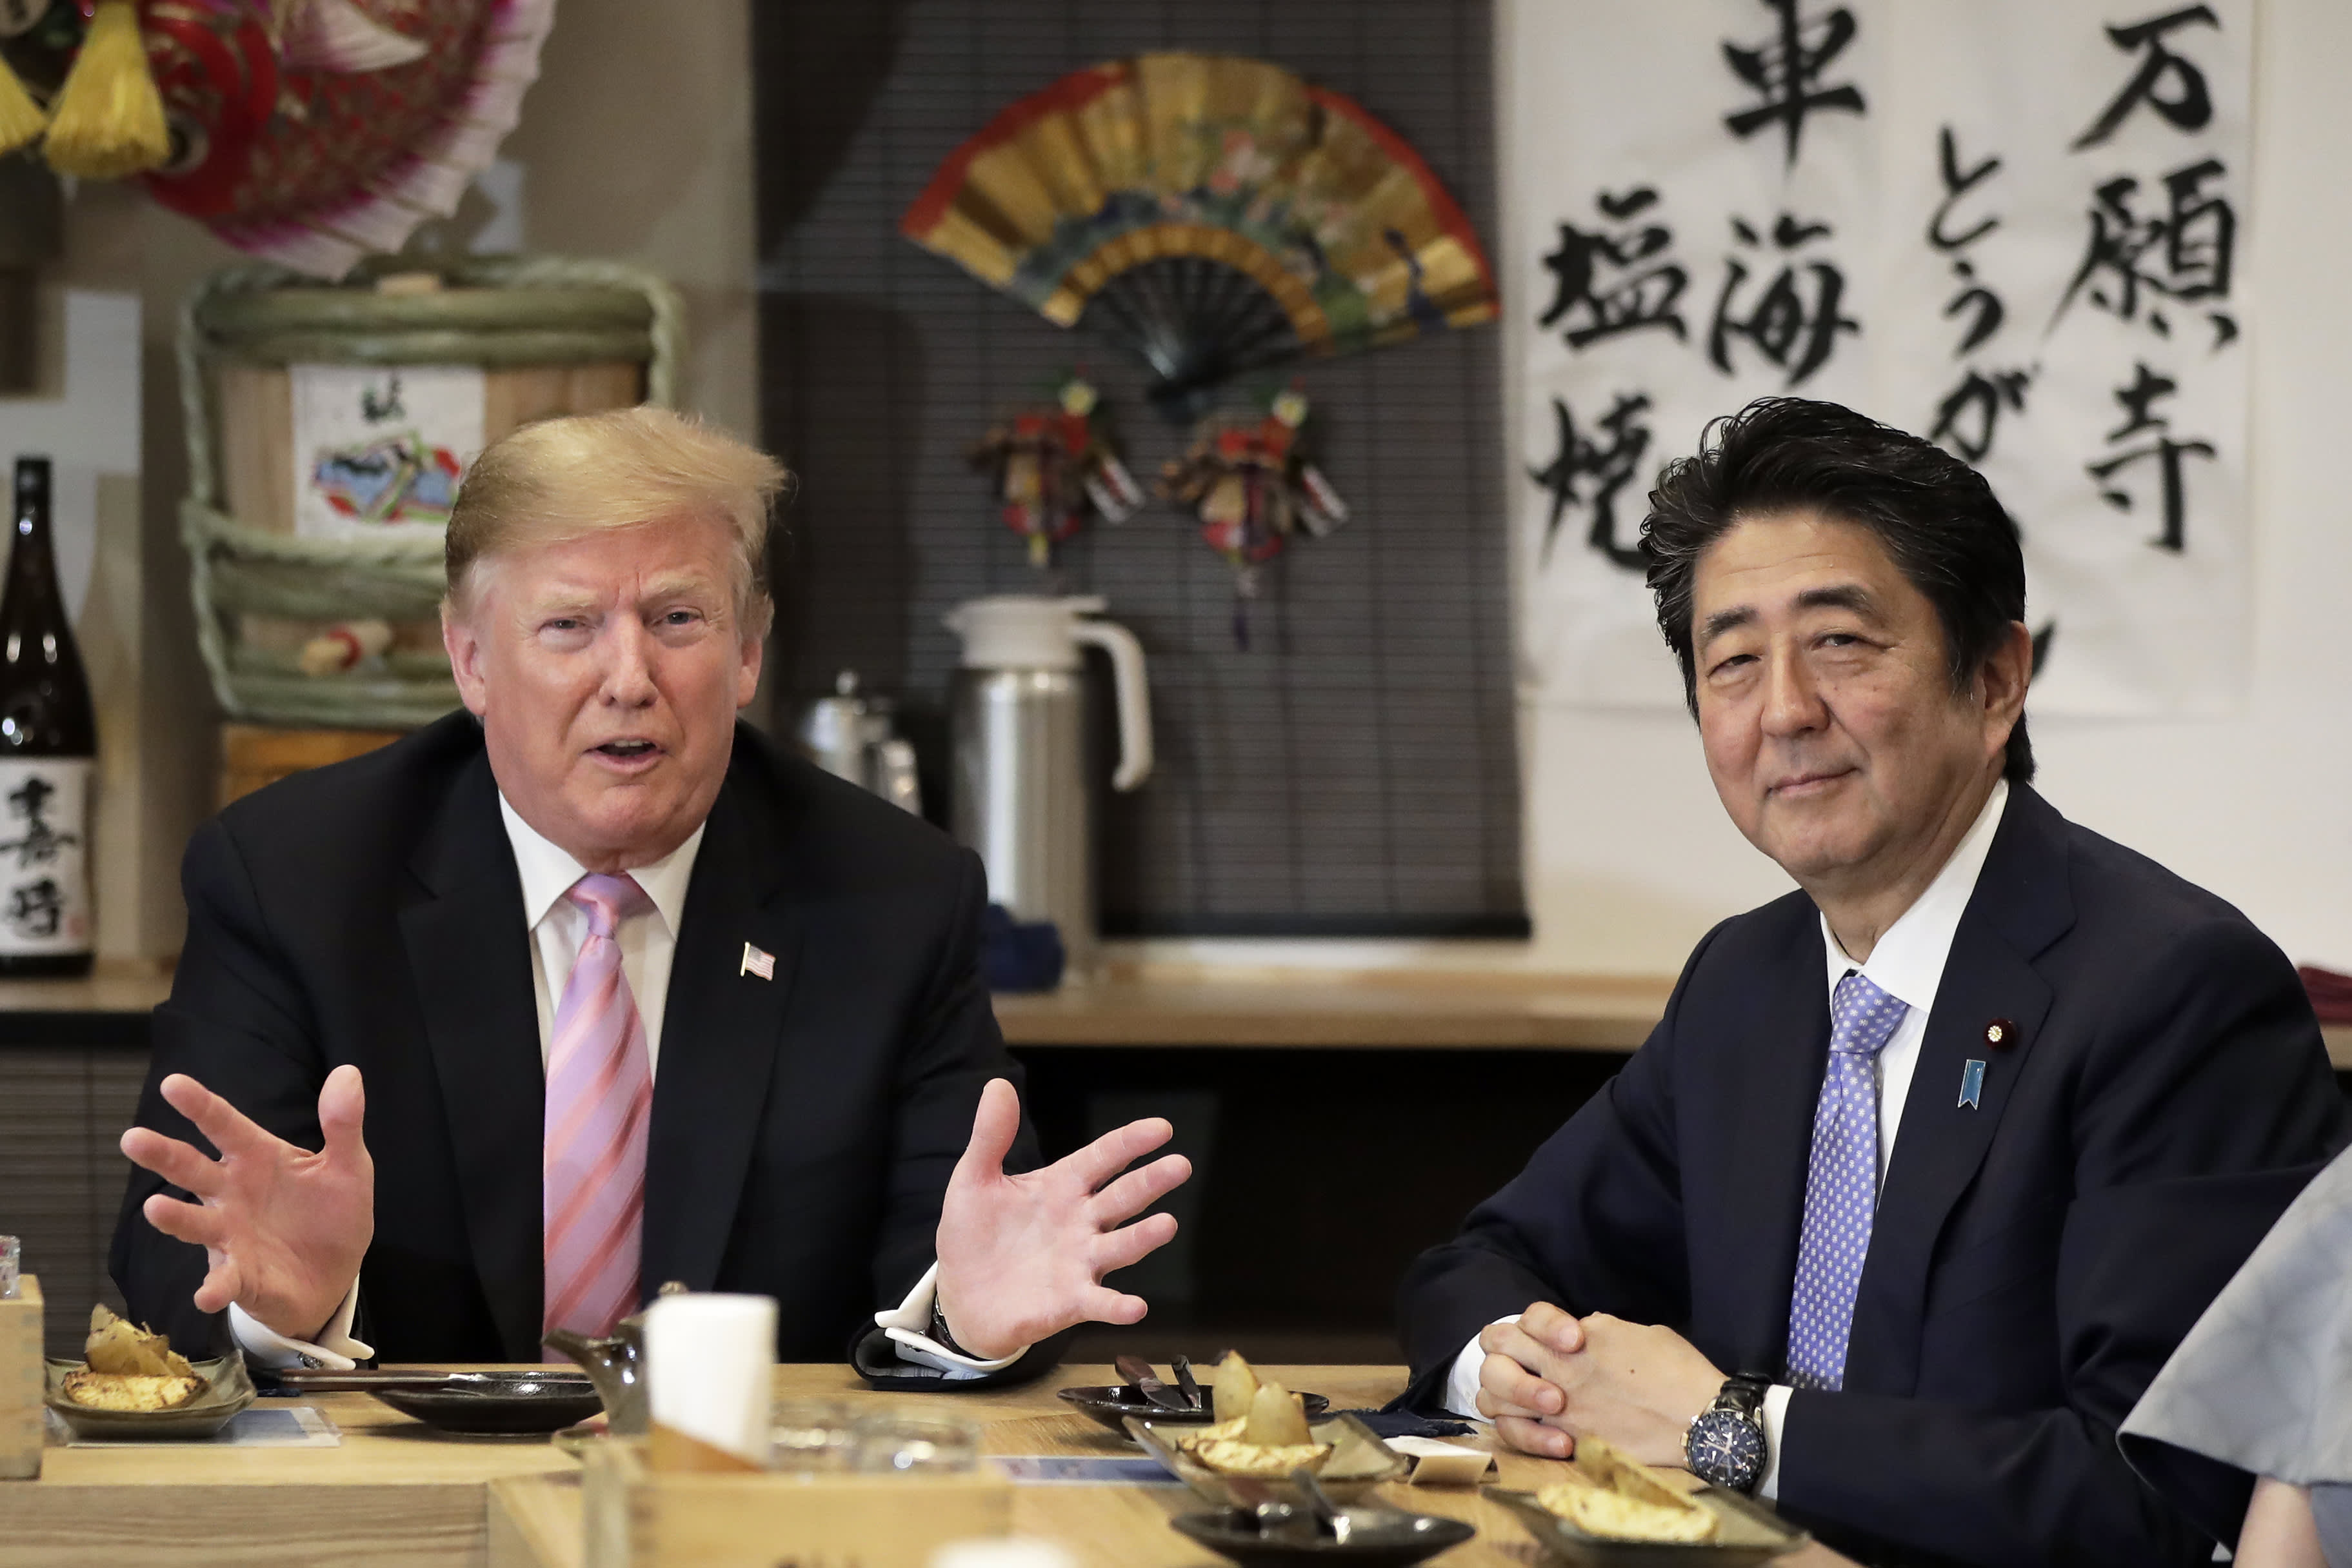 Trump says he hopes to announce a trade deal with Japan soon